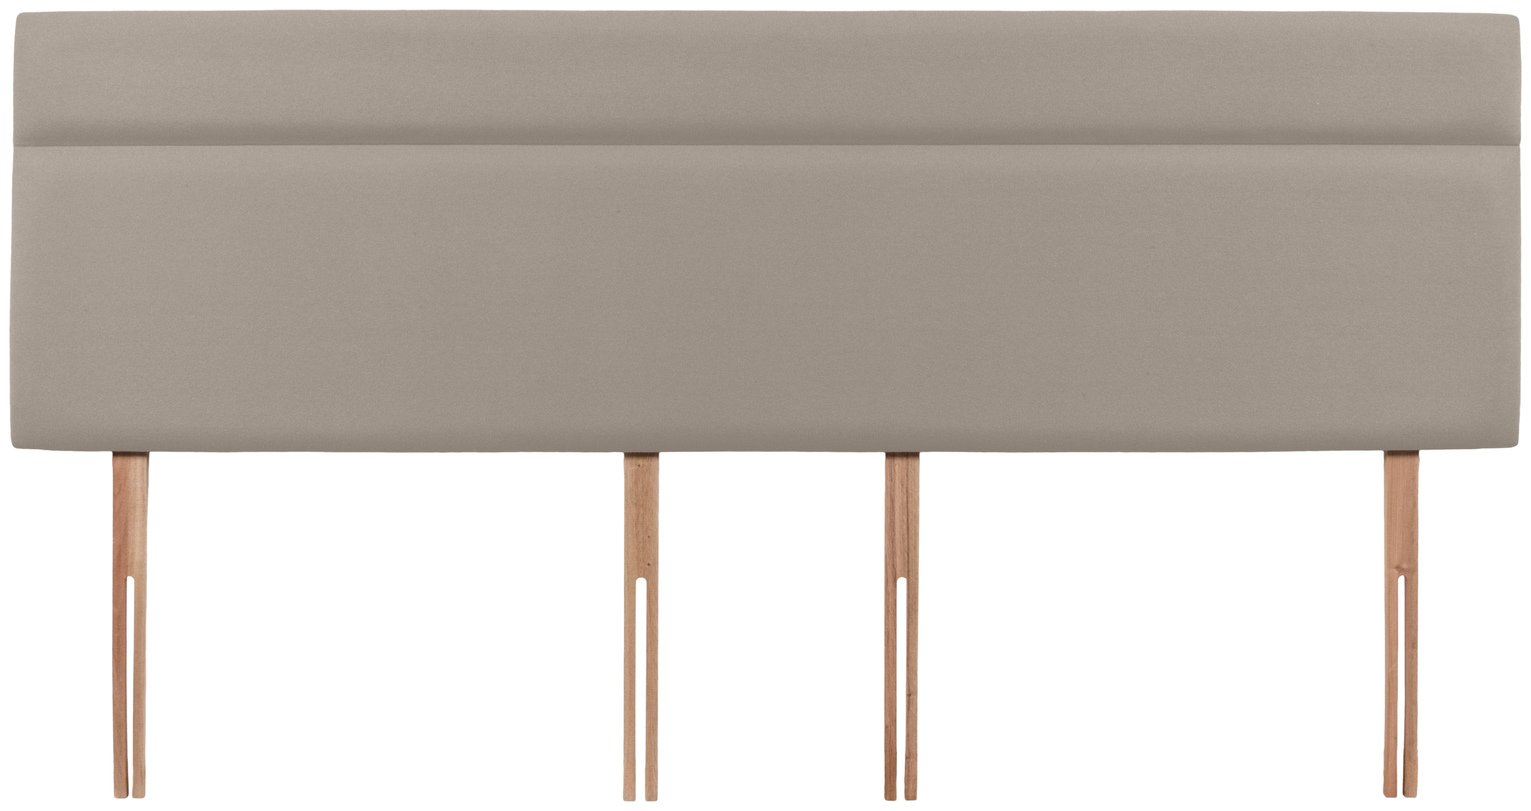 Airsprung Nile Superking Headboard - Sandstone